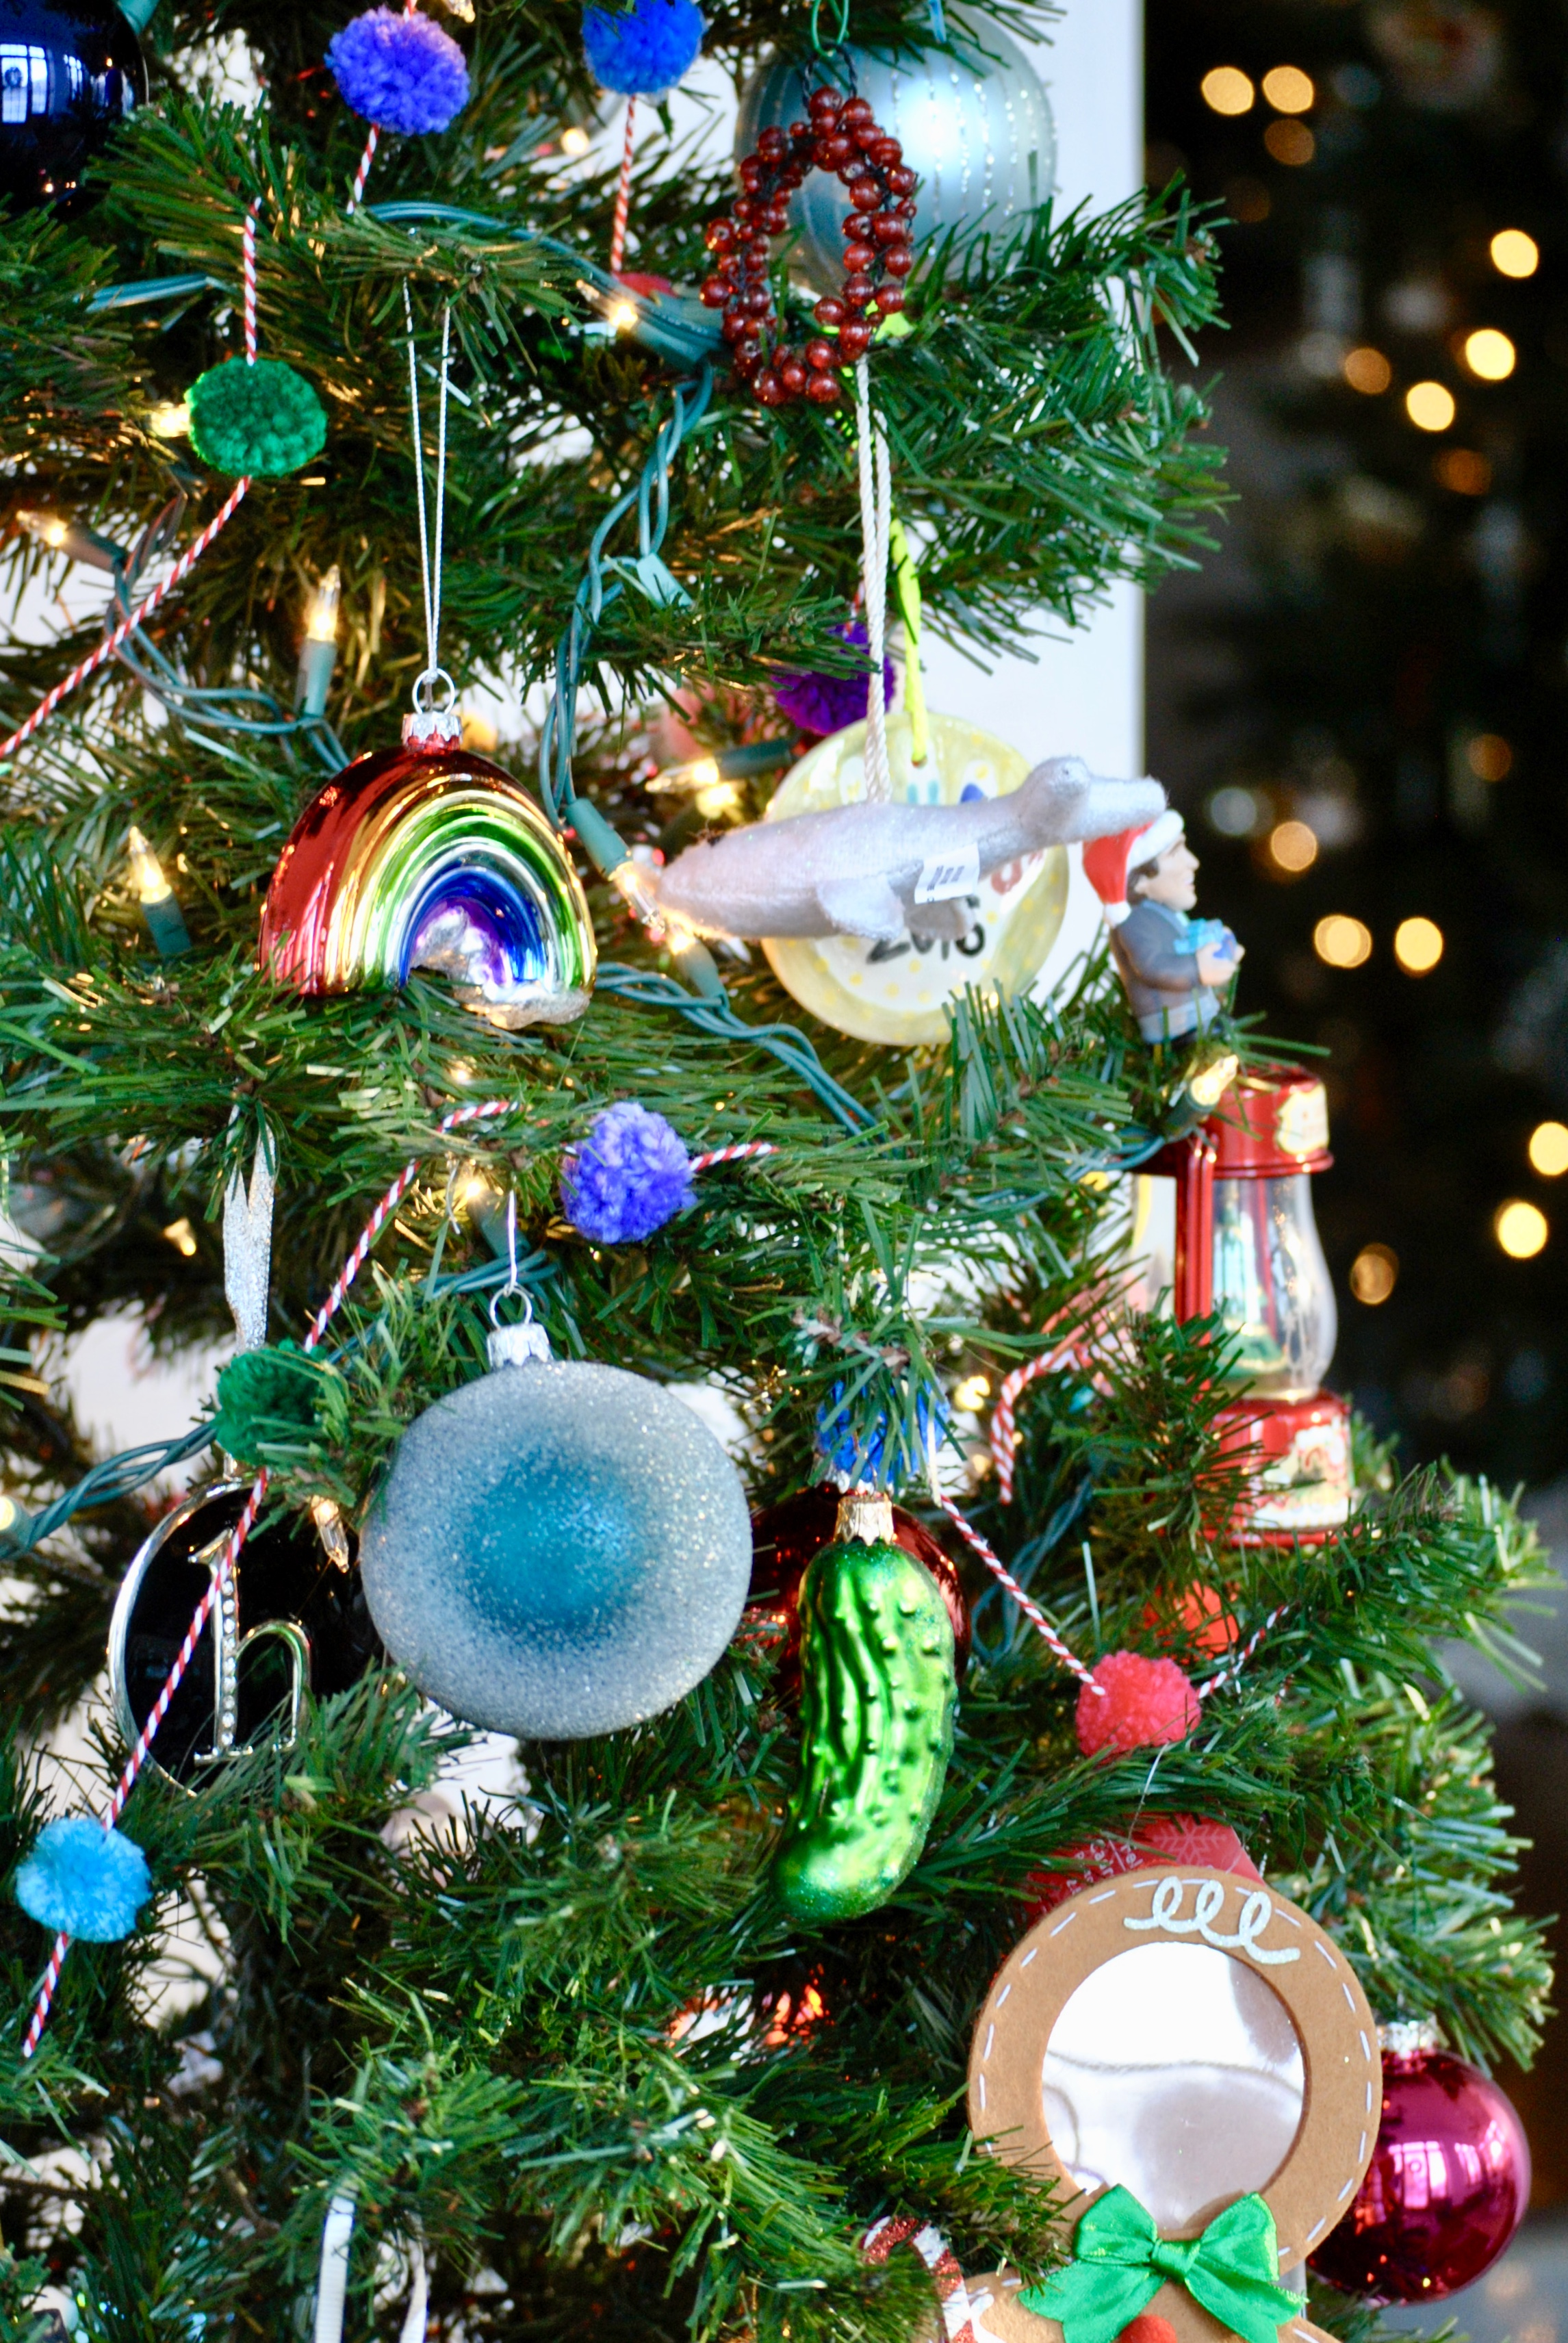 How to decorate a Fun Kids Christmas Tree with colorful ornaments | Sharp + Grey Interiors